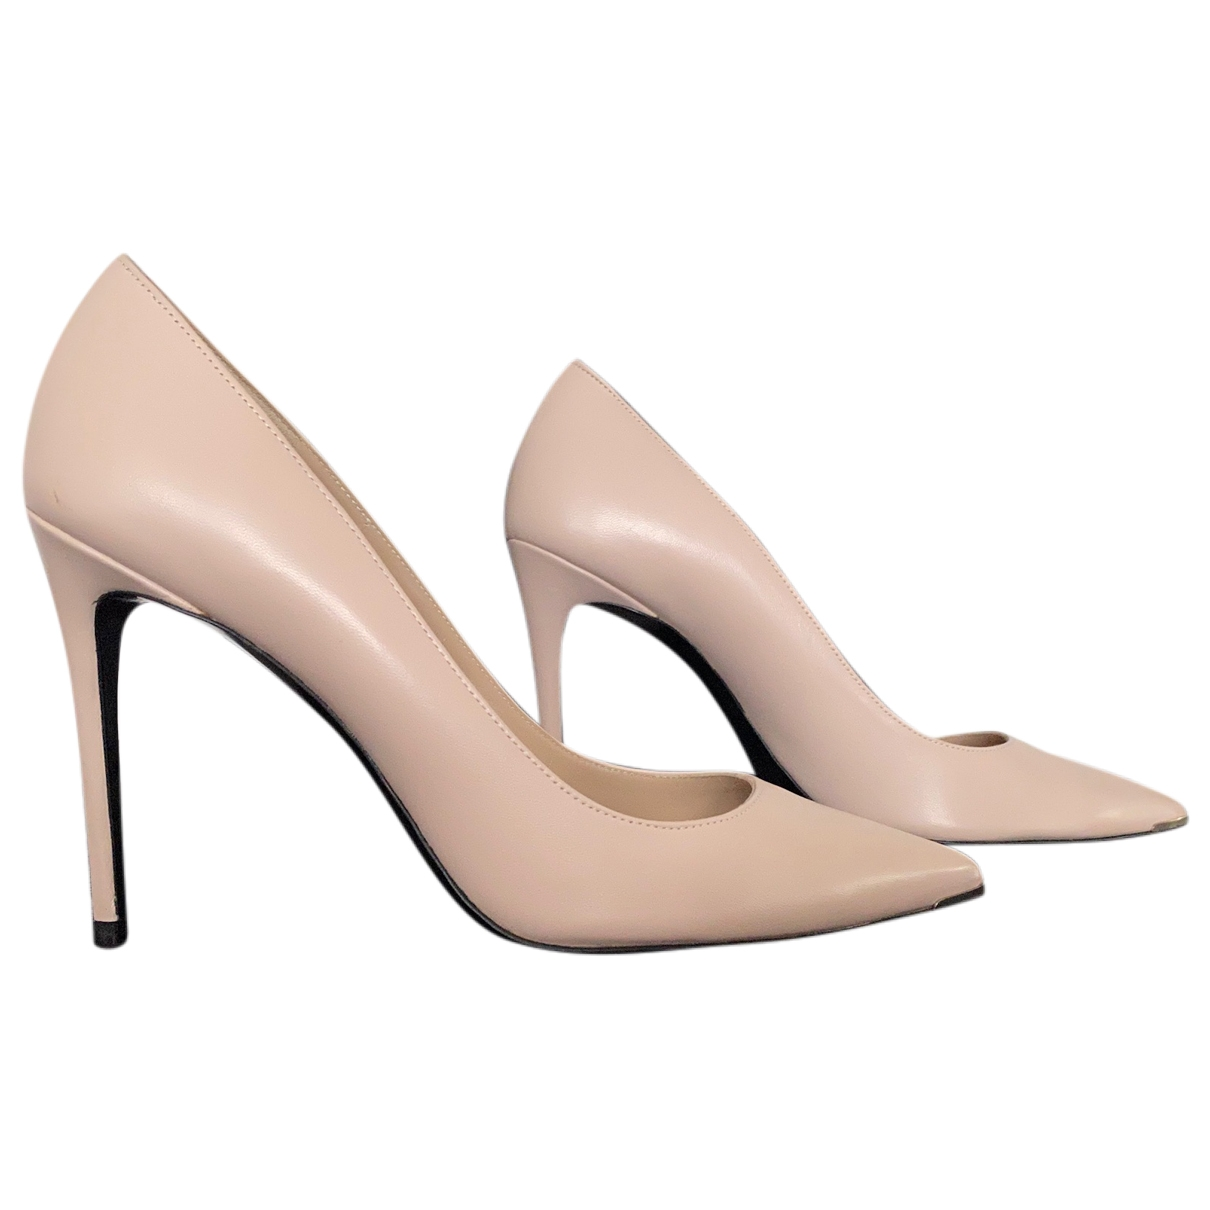 Barbara Bui \N Beige Leather Heels for Women 40 EU